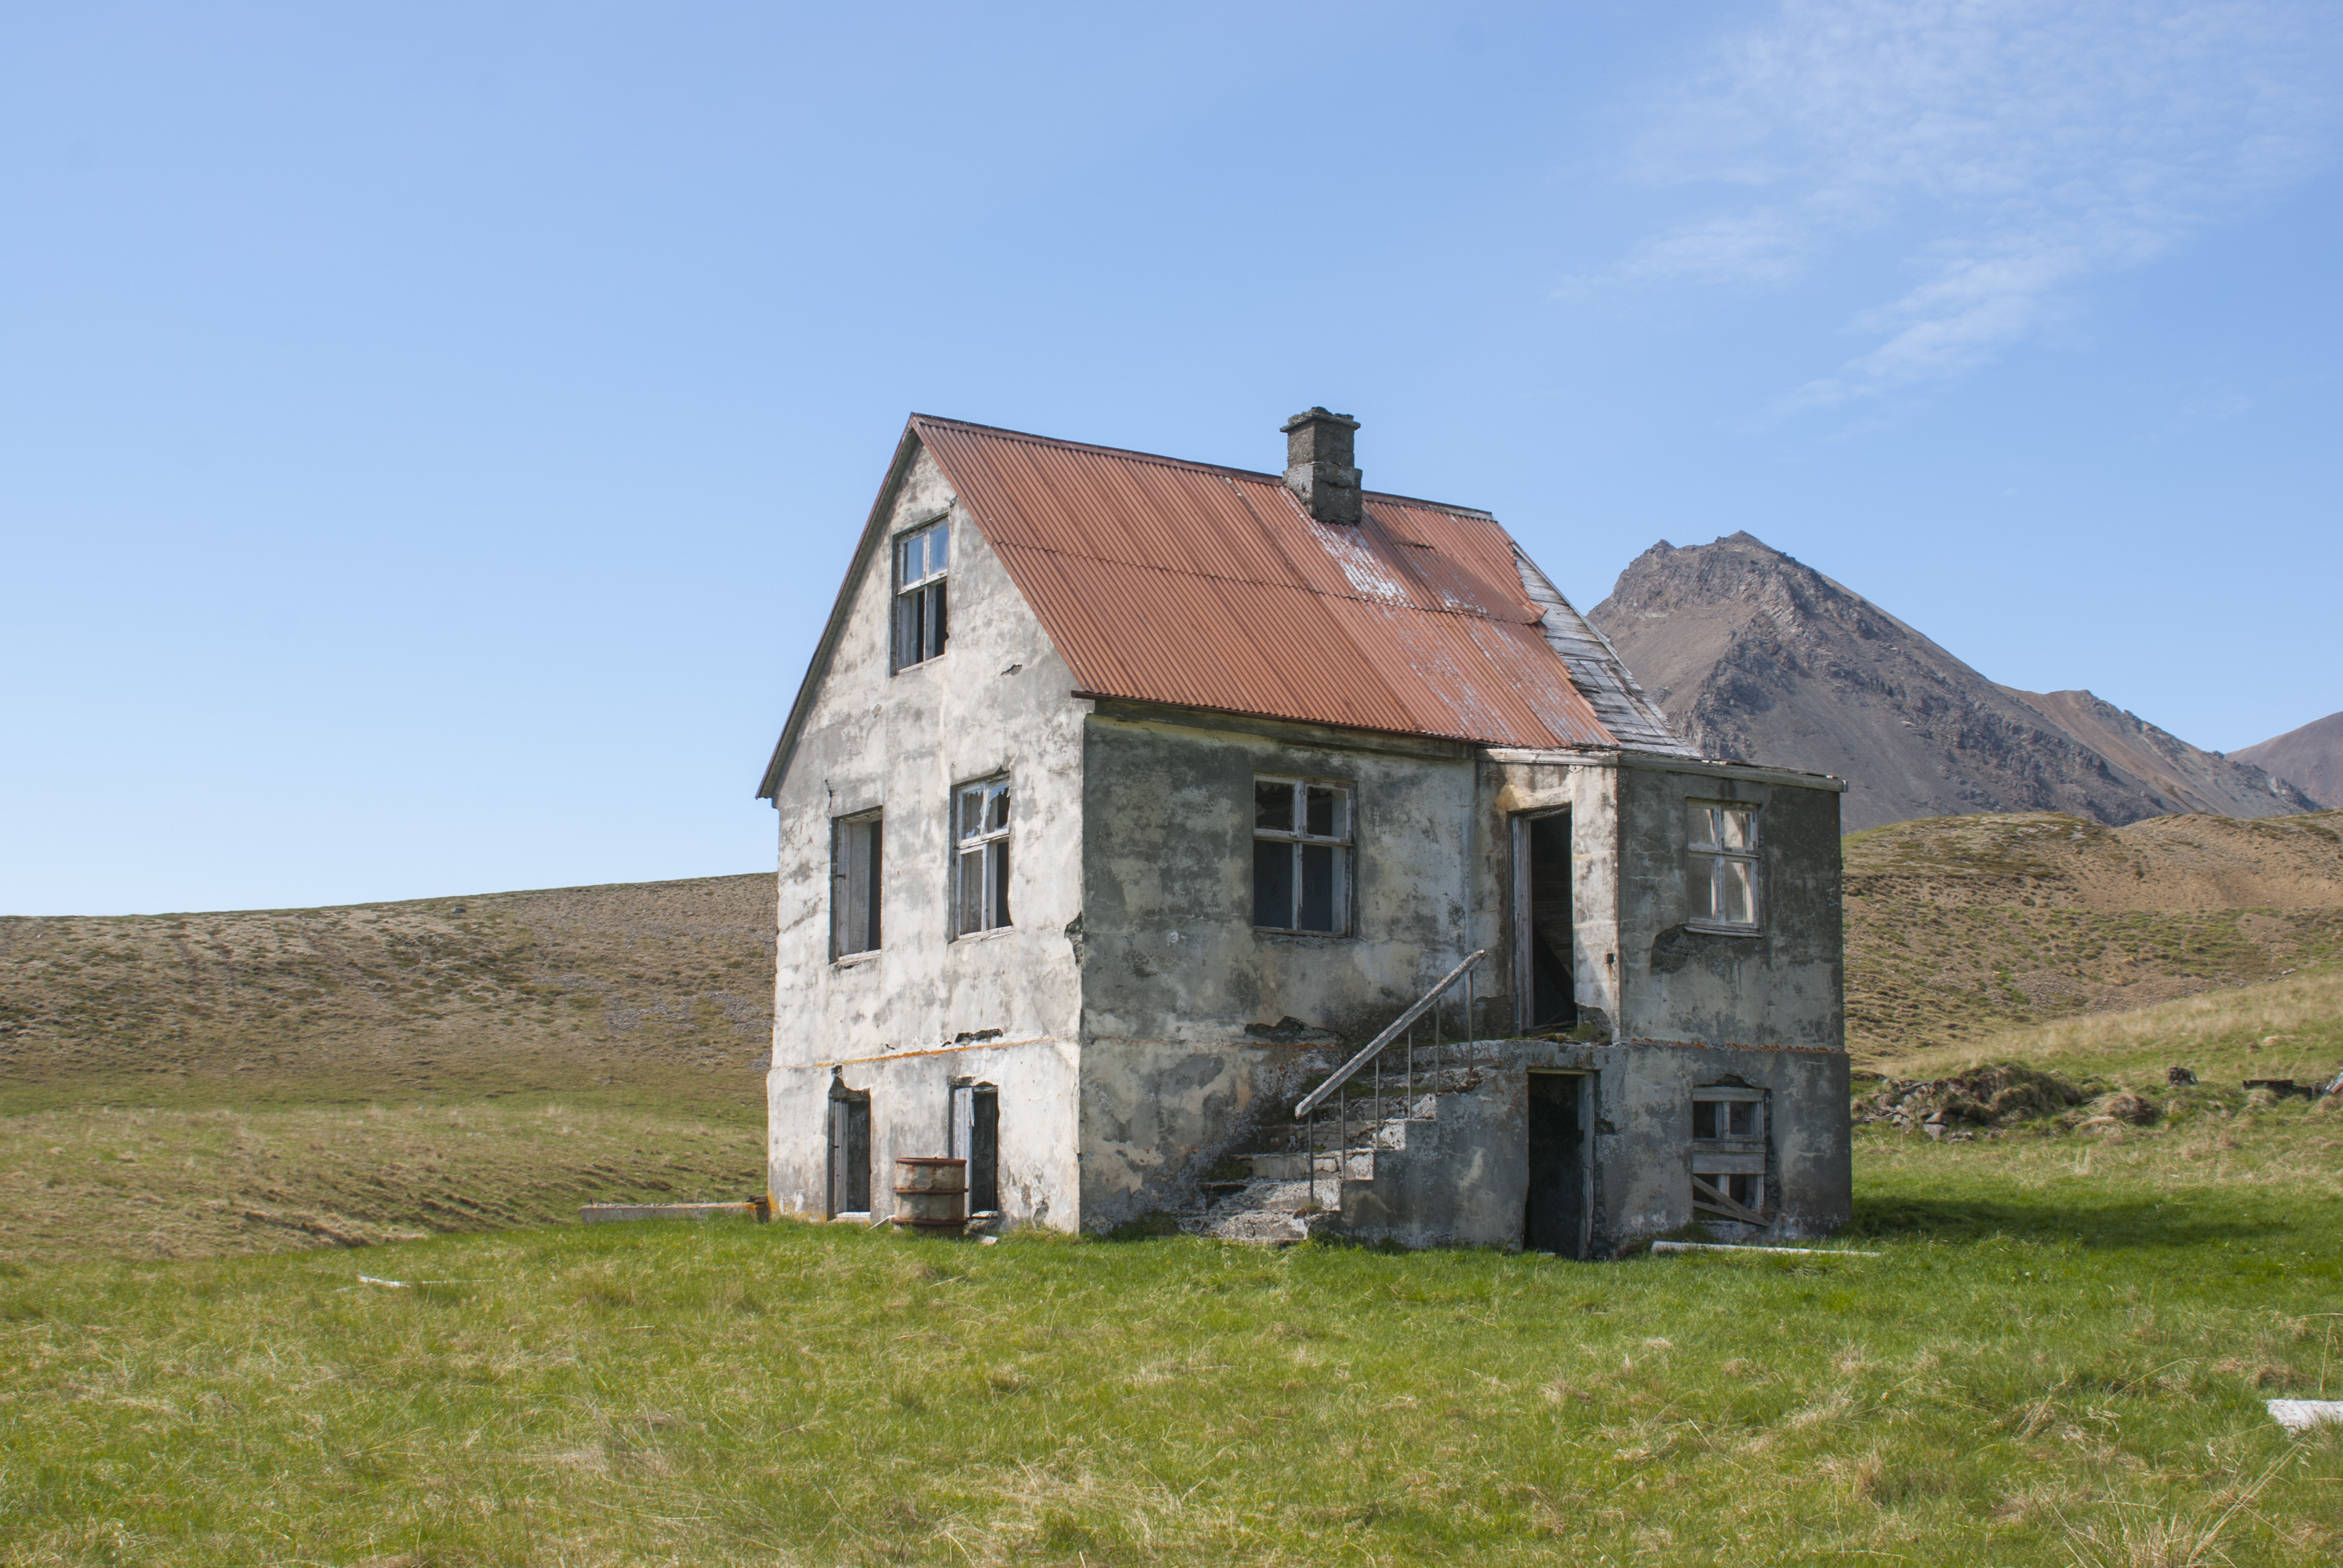 Ey Ib Li Slandi Abandoned Rural Homes In Iceland